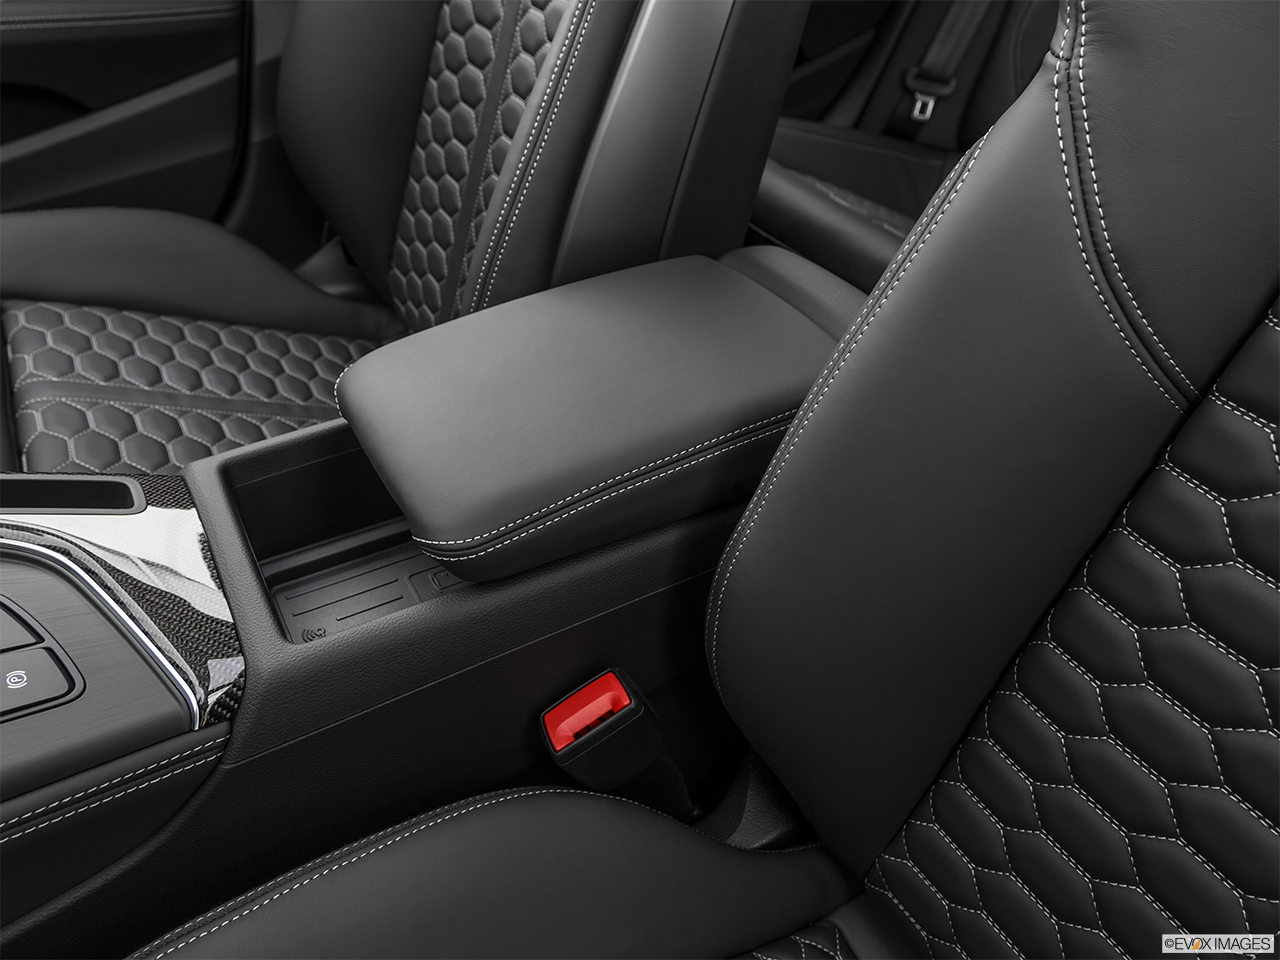 2019 Audi RS 5 Sportback 2.9 TFSI Front center console with closed lid, from driver's side looking down